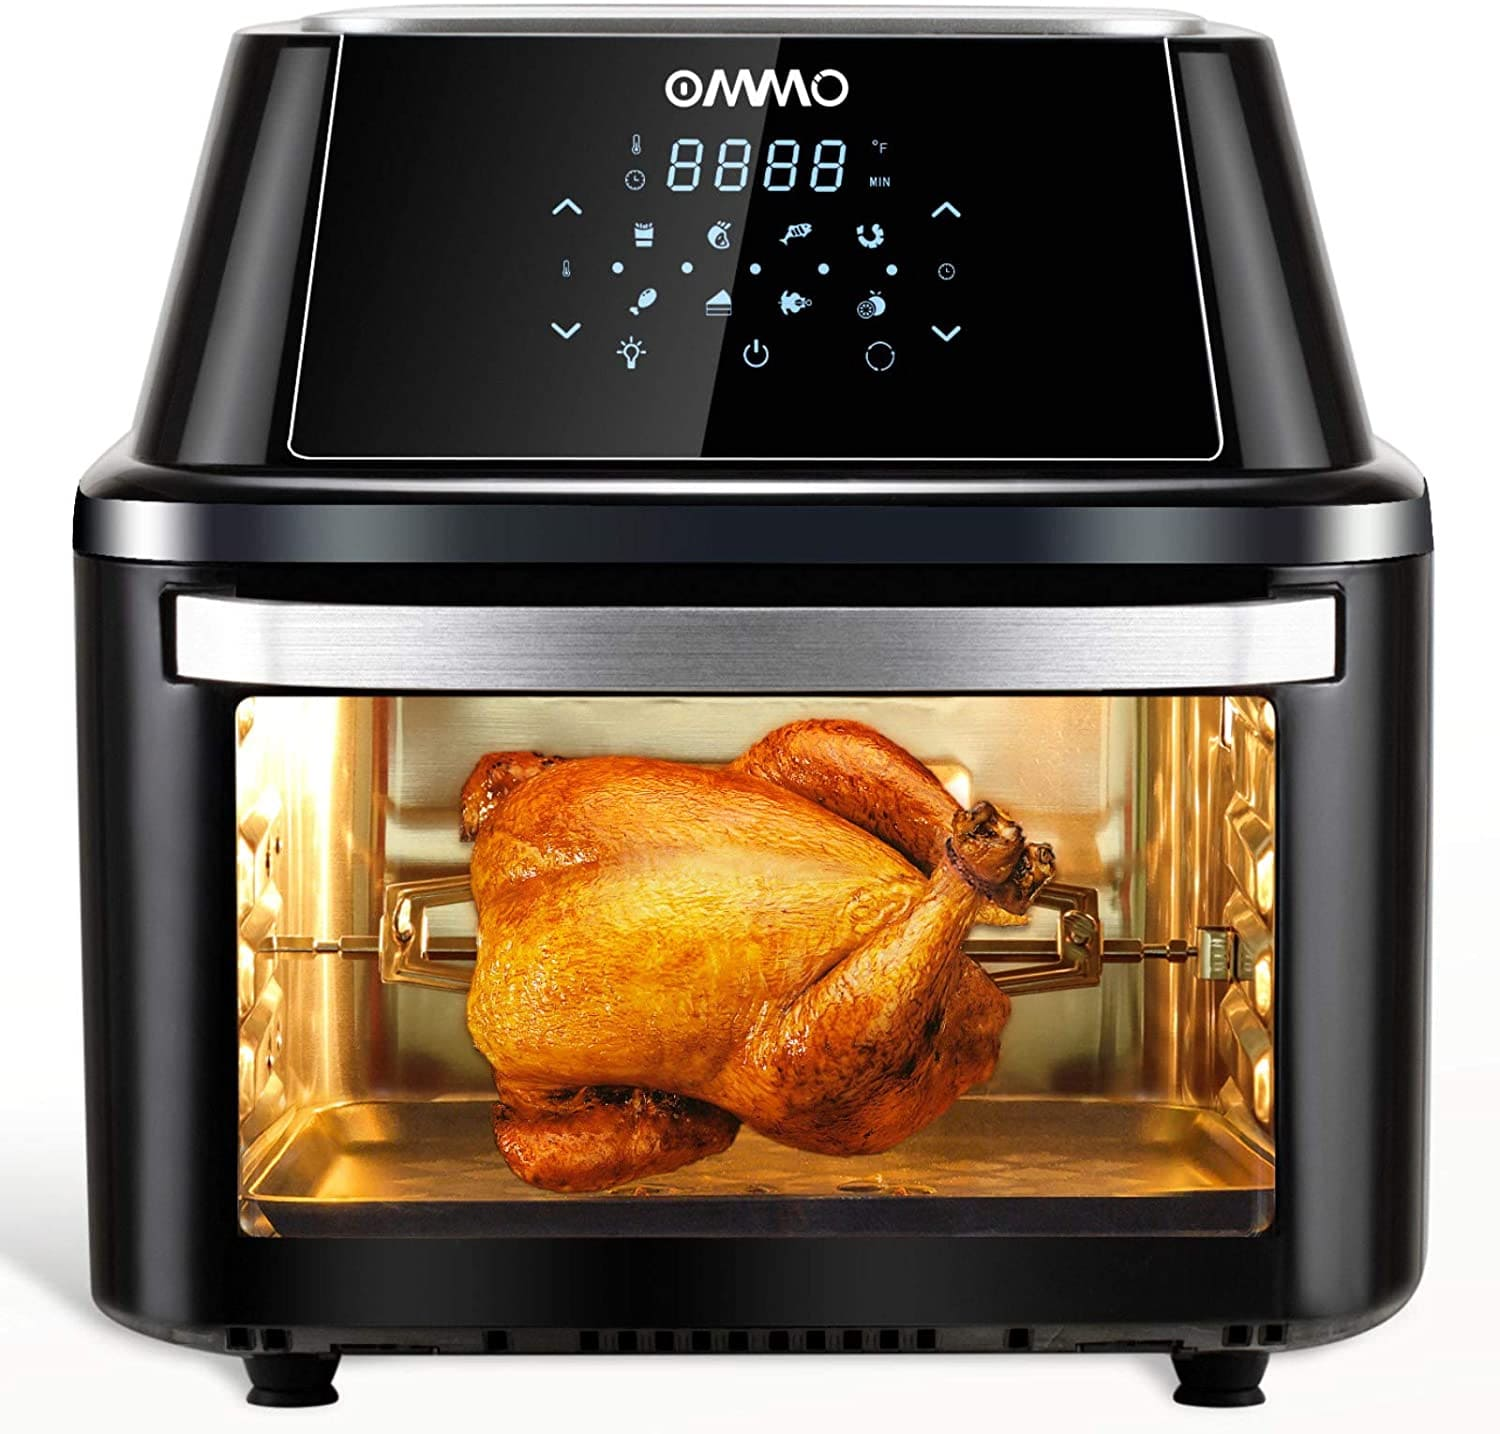 OMMO Air Fryer Oven, 17 Quarts 1800W Large Air Fryer Toaster Oven, 8 Presets